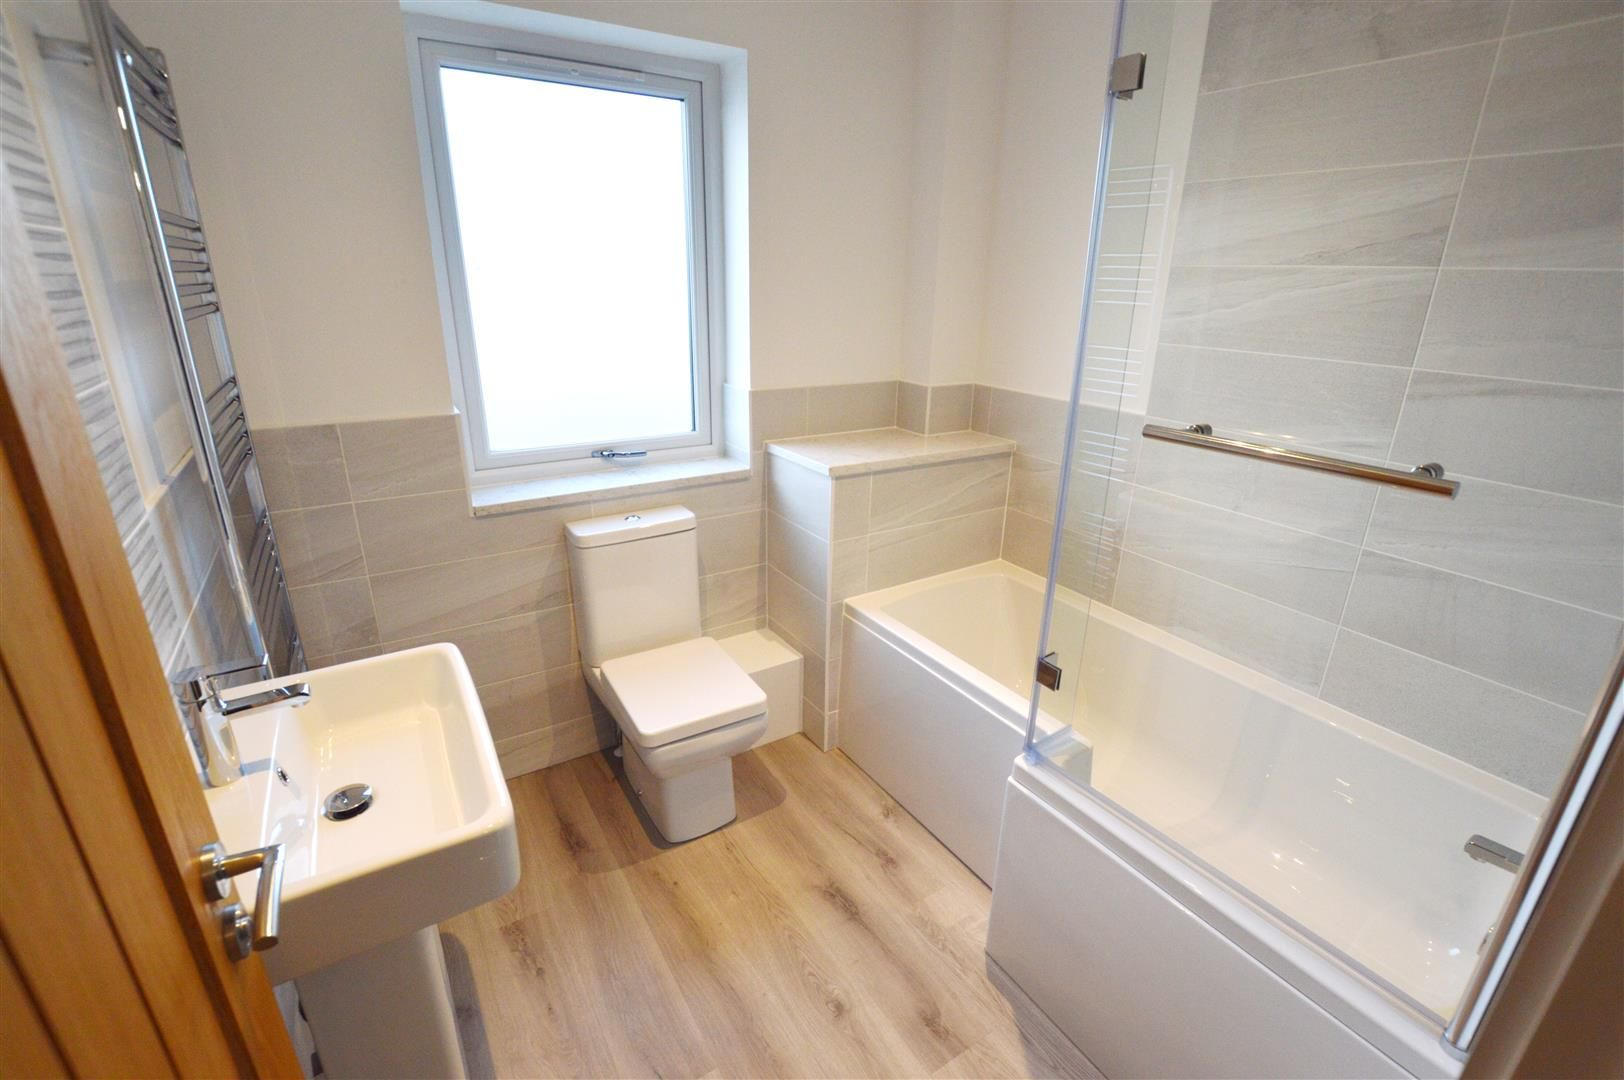 3 bed terraced for sale in Leominster 8